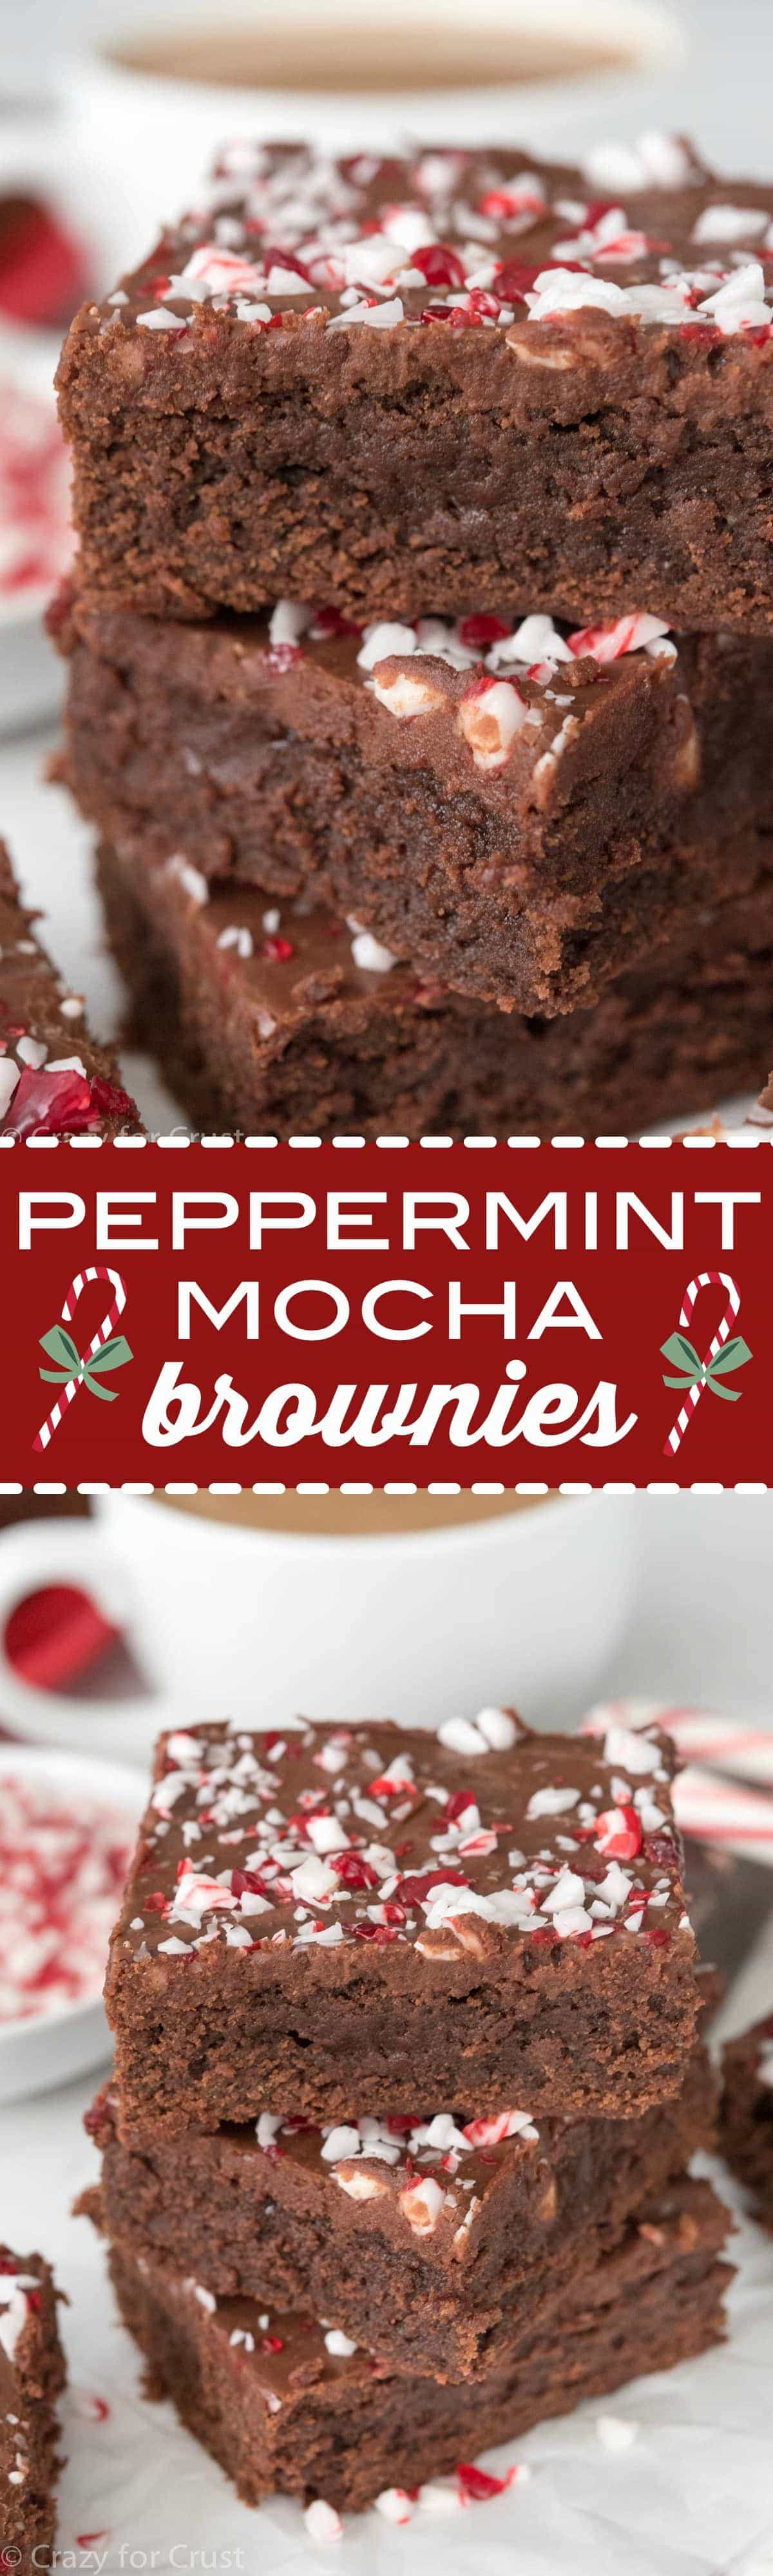 Peppermint Mocha Brownies - this easy brownie recipe yields a thick and fudgy brownie filled with peppermint mocha flavor!